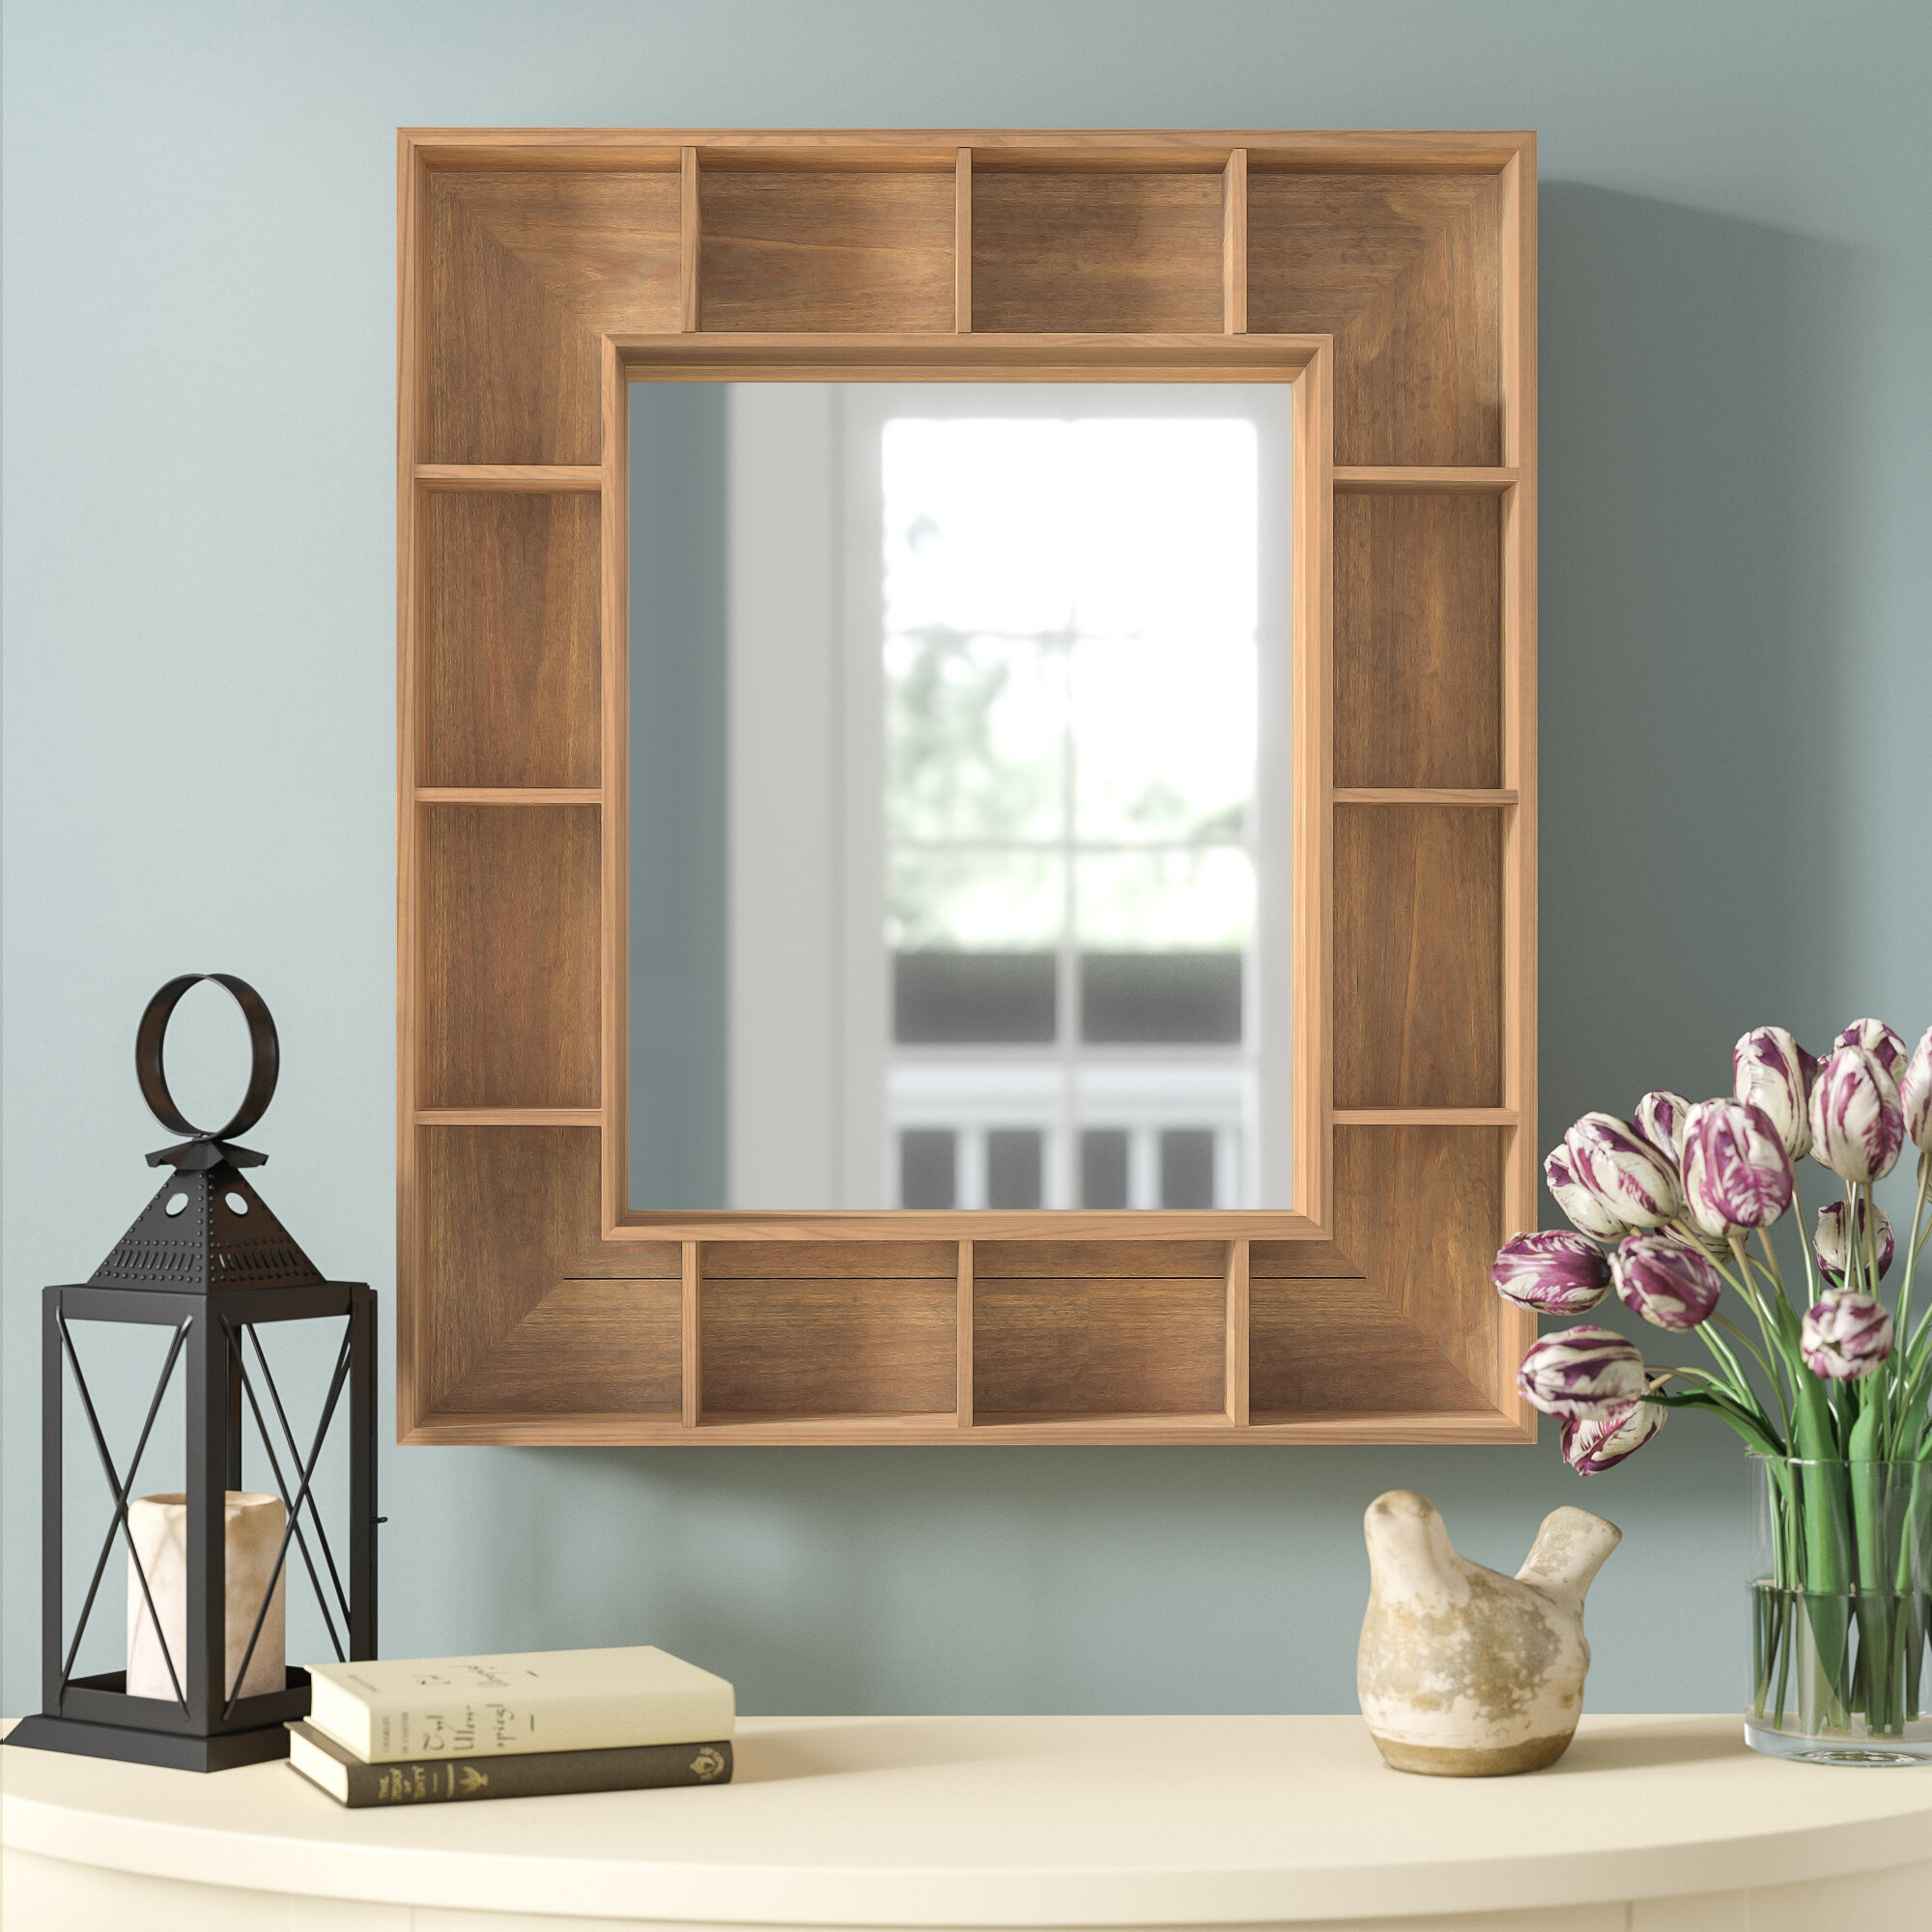 Three Posts Swanage Rustic Wood Cubby Framed Wall Storage Accent Mirror With Regard To Hallas Wall Organizer Mirrors (Image 19 of 20)